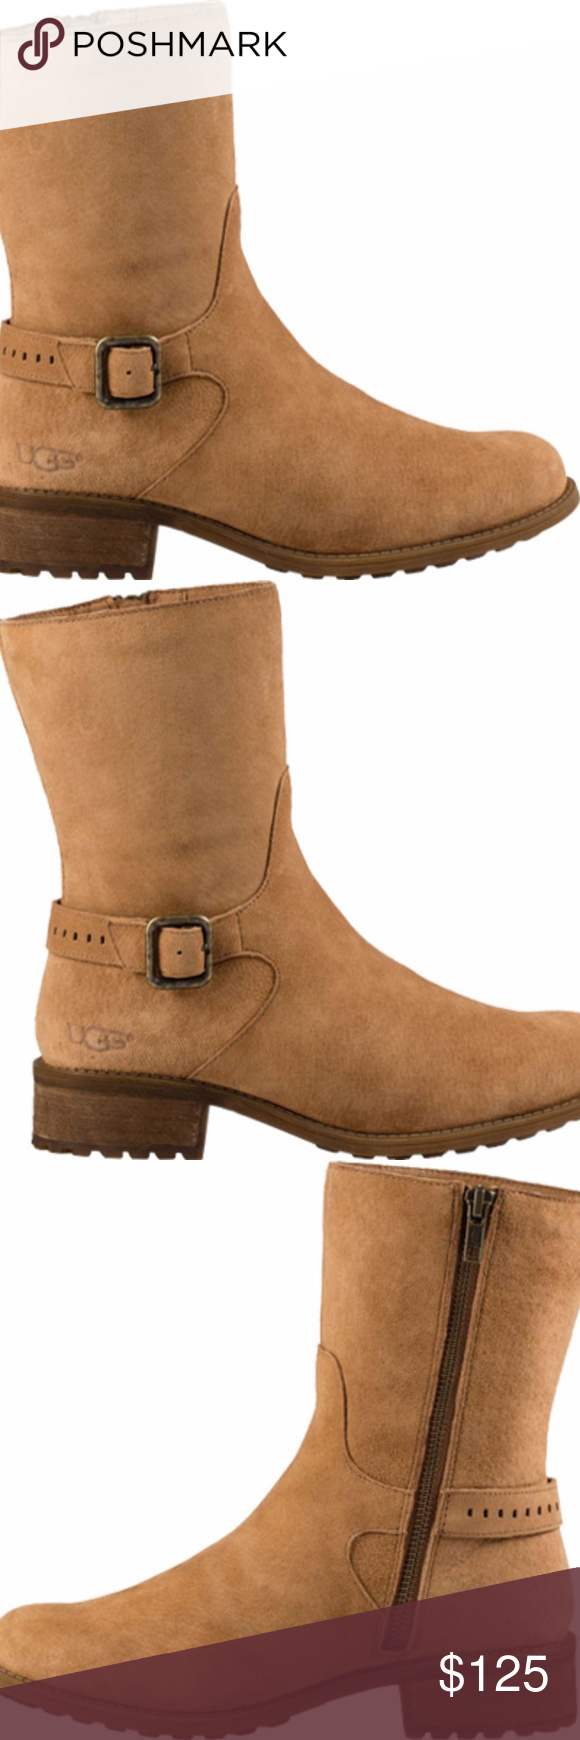 63ed0c7790c Ugg Chestnut Keppler Boots Size 8 Brand New Featuring a classic ...